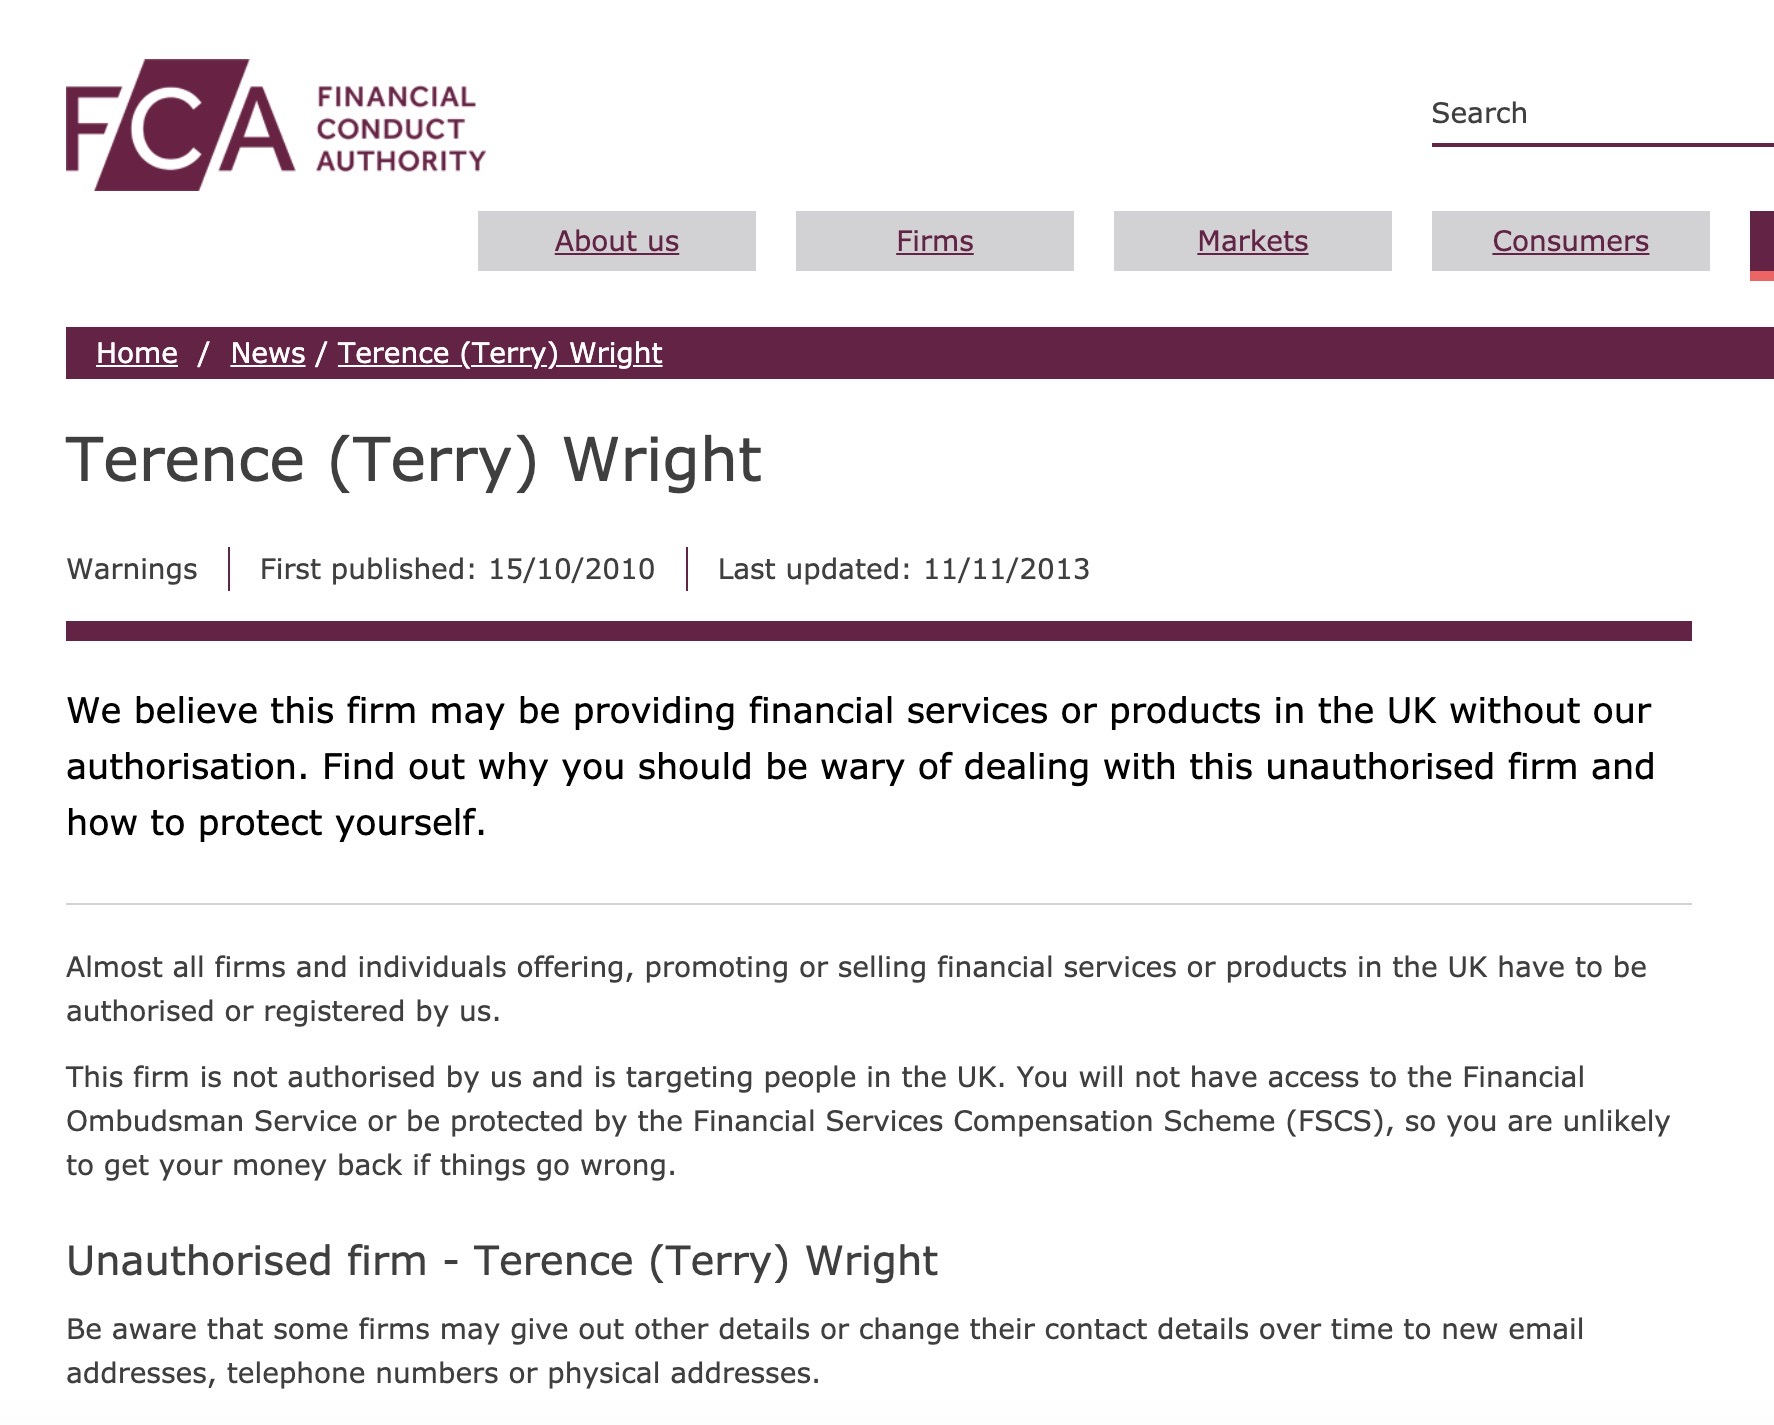 FCA warning against Terence Wright of CLP - ignored by Christine Hallett of Carey Pensions